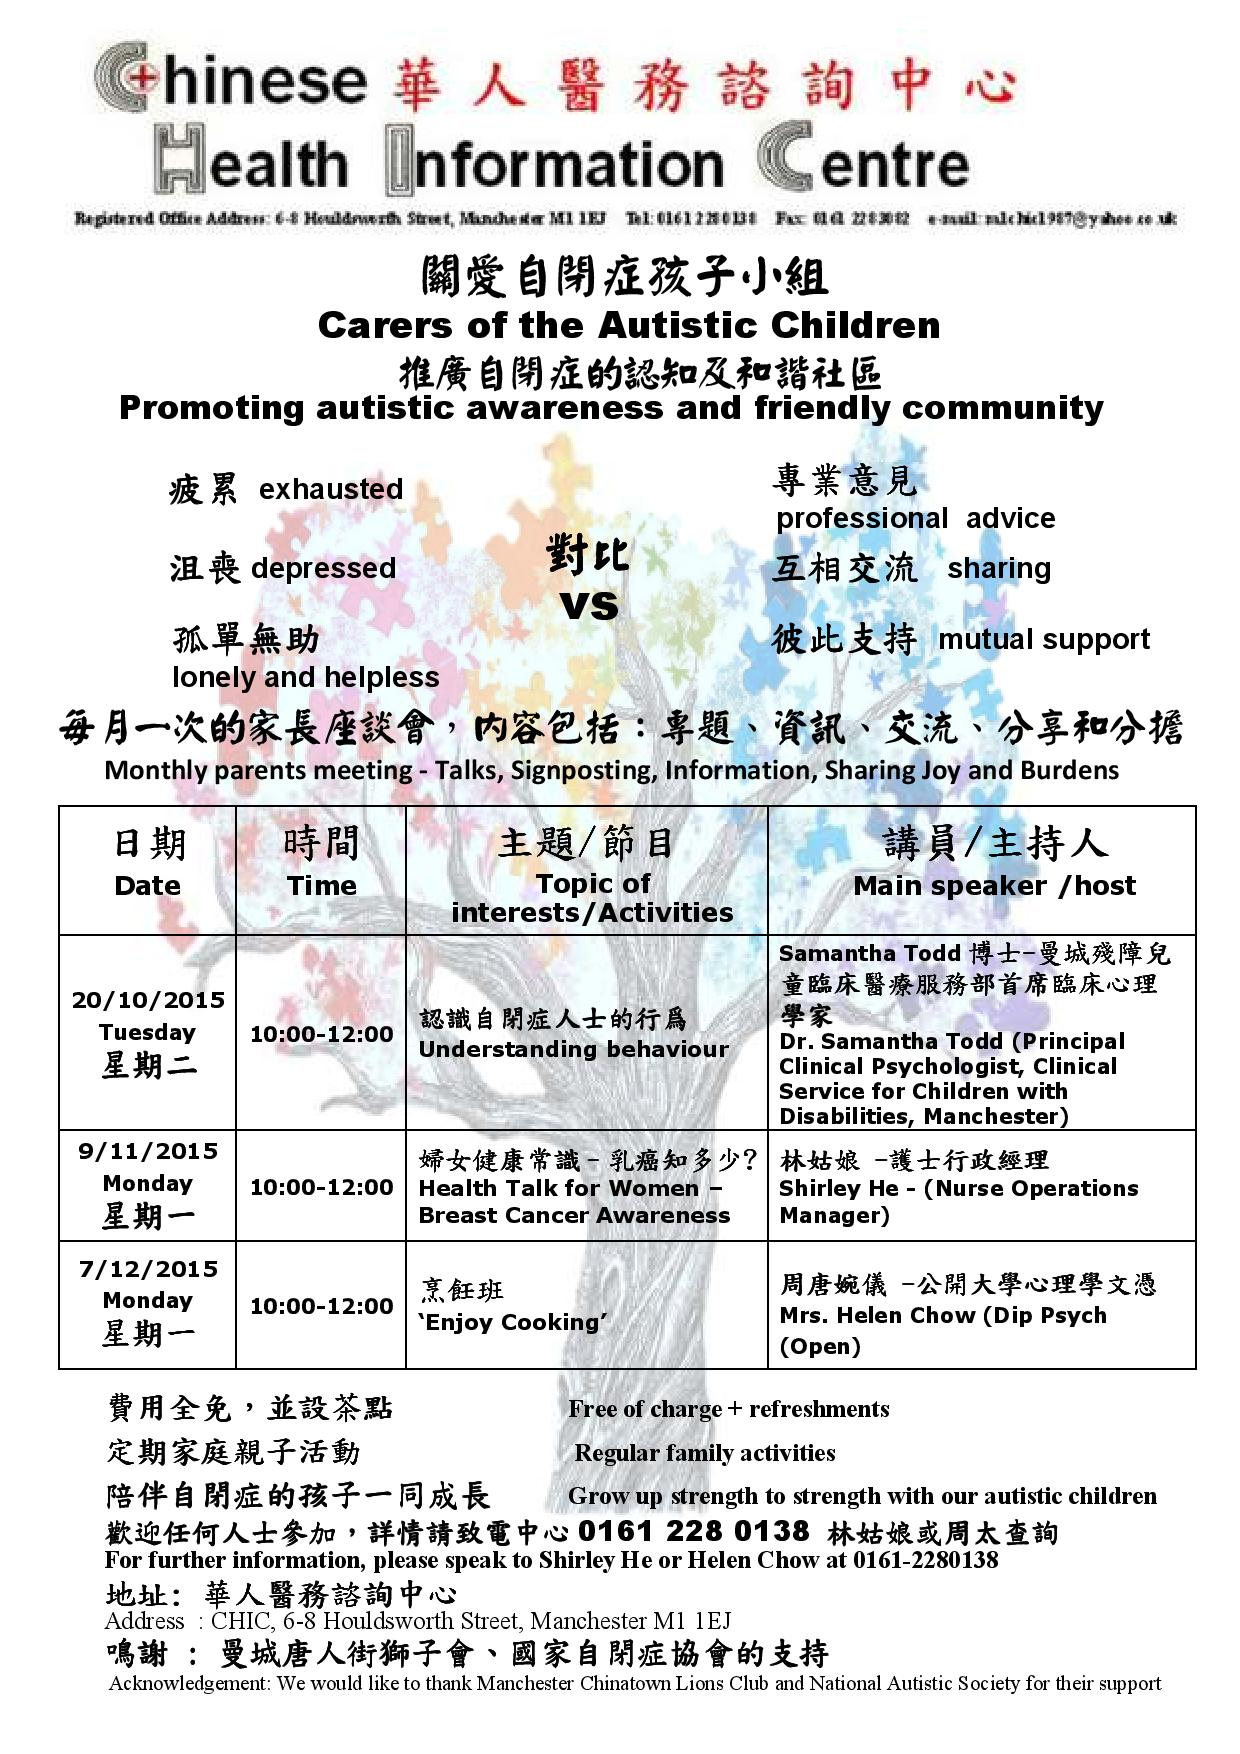 Carers of Autistic Children